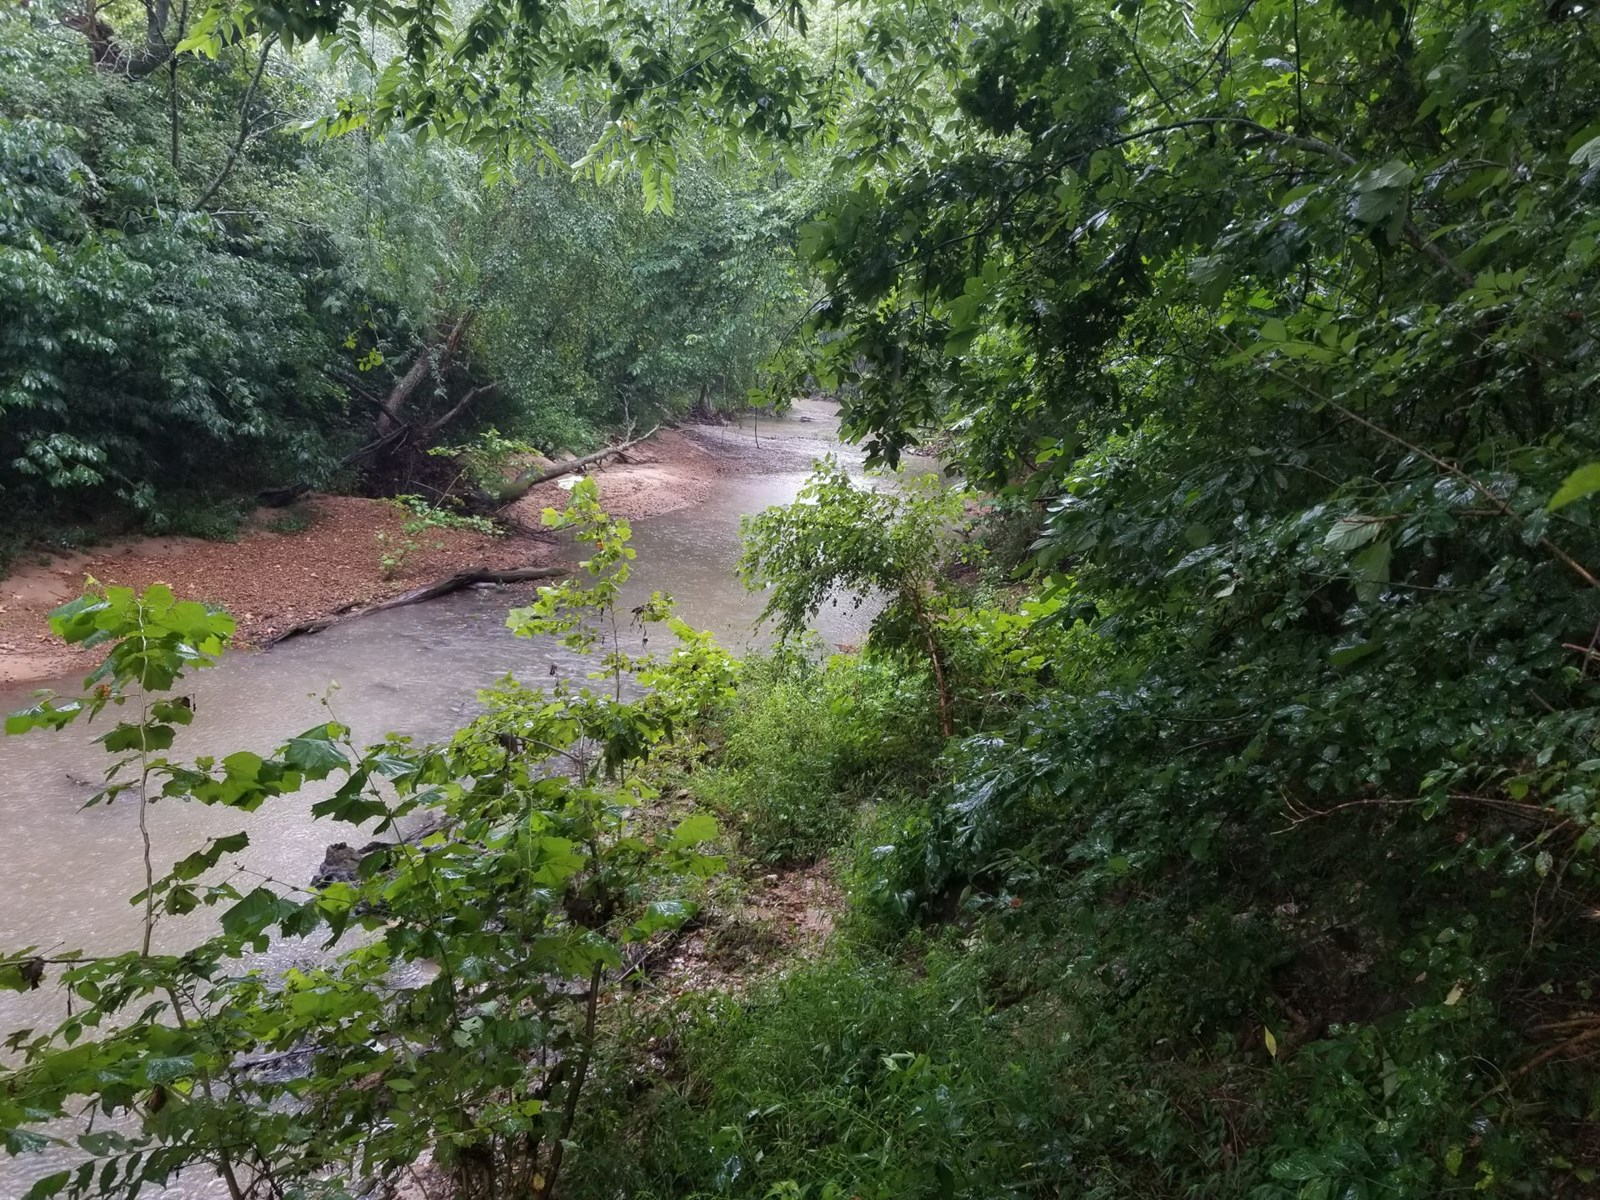 10 ACRES FOR SALE ON FRESHWATER CREEK IN ZION, AR